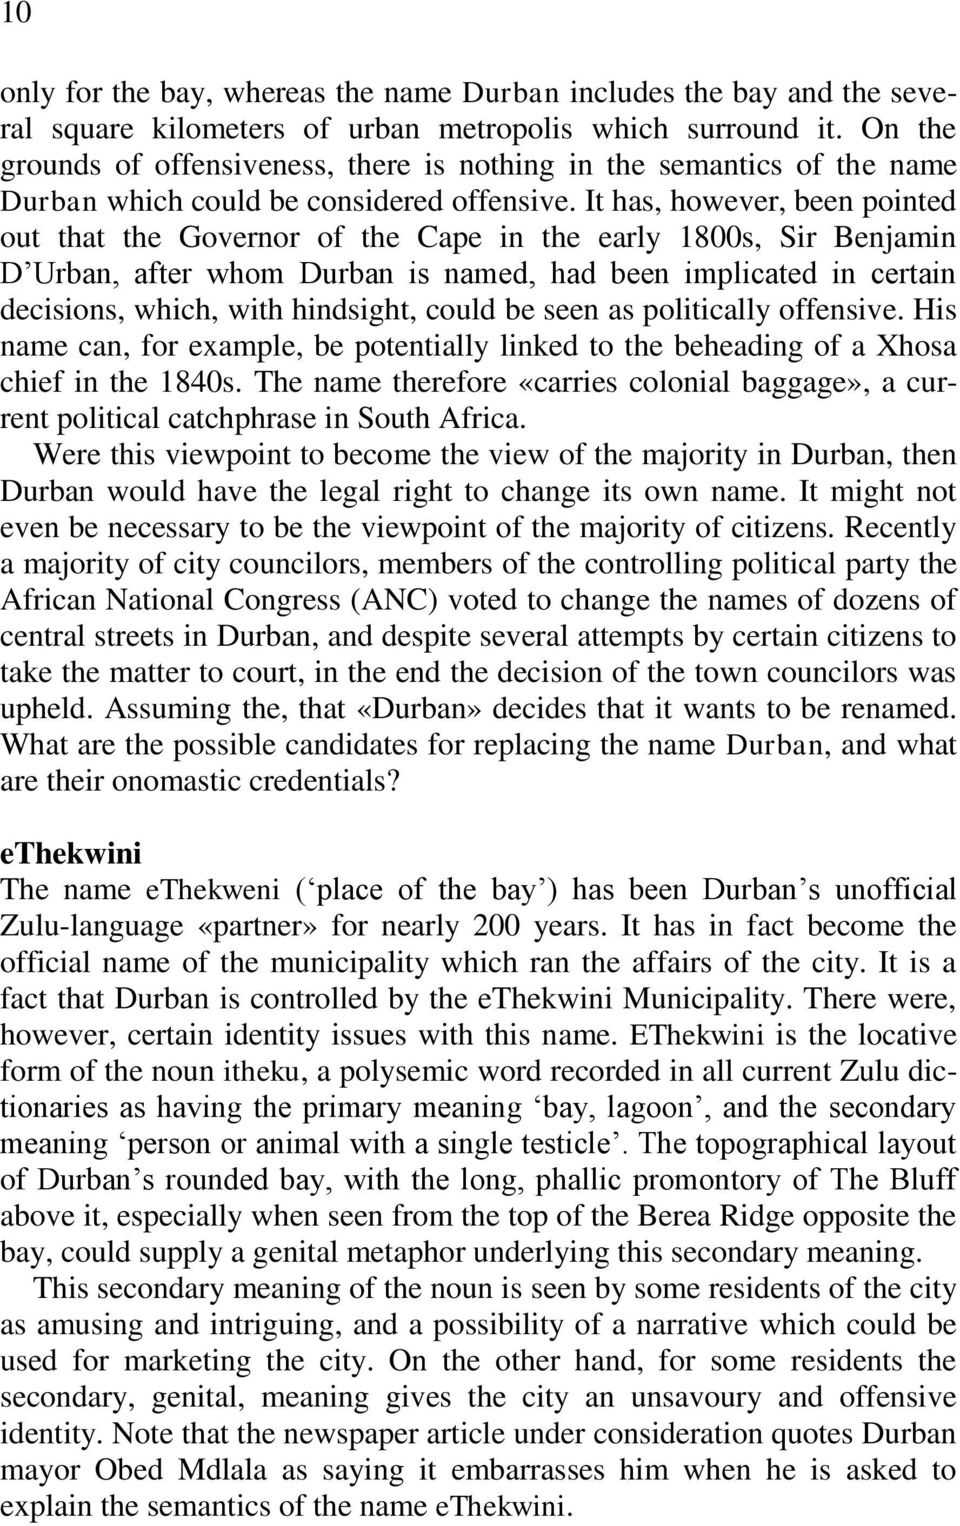 It has, however, been pointed out that the Governor of the Cape in the early 1800s, Sir Benjamin D Urban, after whom Durban is named, had been implicated in certain decisions, which, with hindsight,